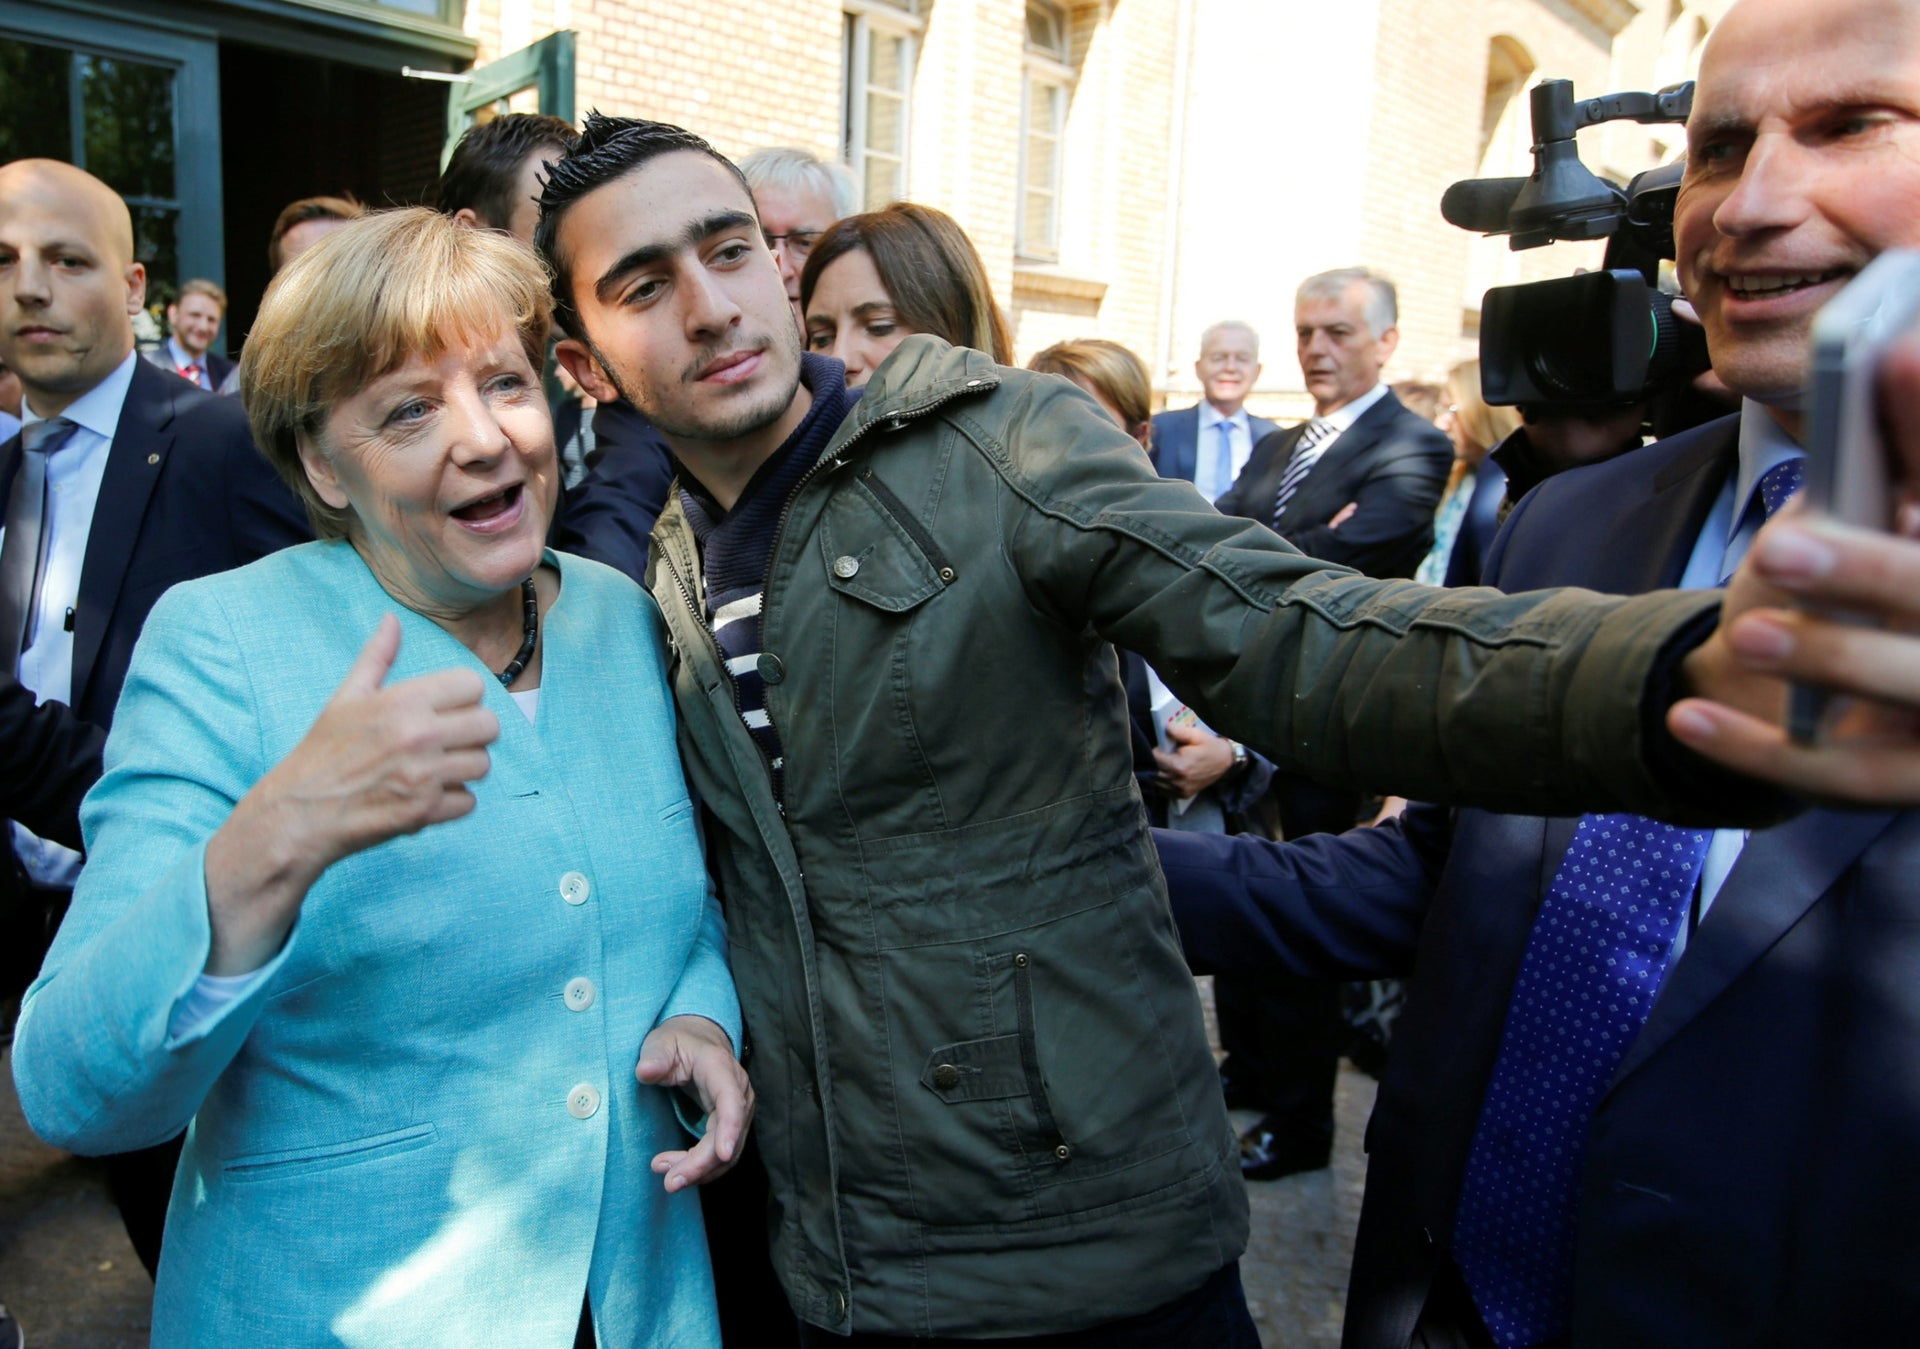 Syrian refugee Anas Modaman takes a selfie with German Chancellor Angela Merkel.